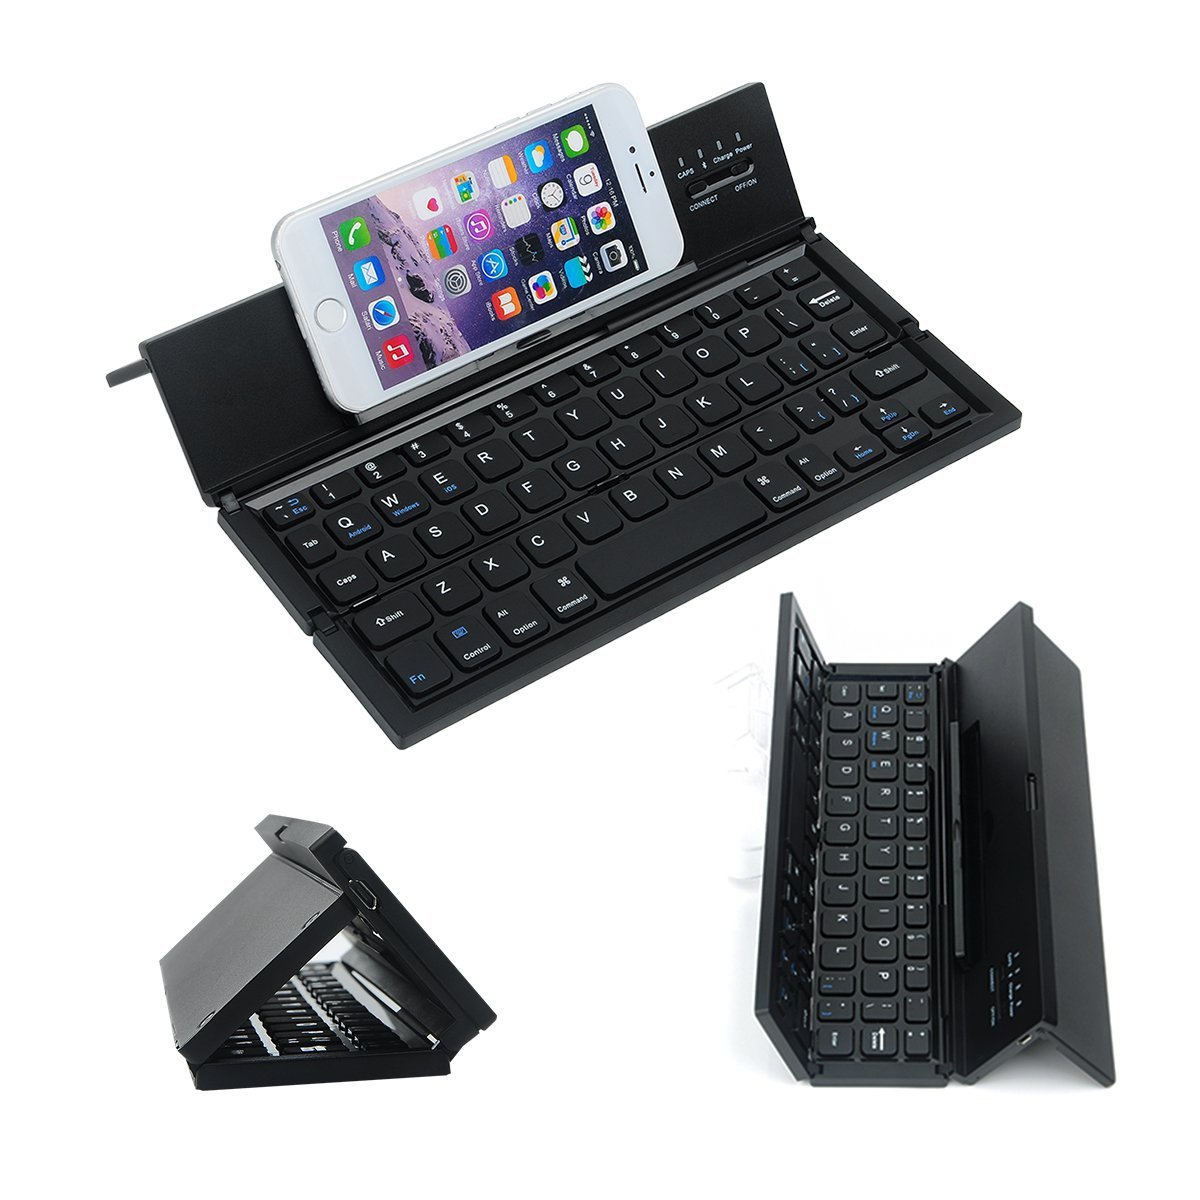 LEANINGTECH Portable Foldable Bluetooth Keyboard Aluminum Metal Collapsible Keypad with Kickstand Holder Phone Holder for iPhone, iPad, Samsung, Android, Windows Device-Black by LEANINGTECH (Image #2)